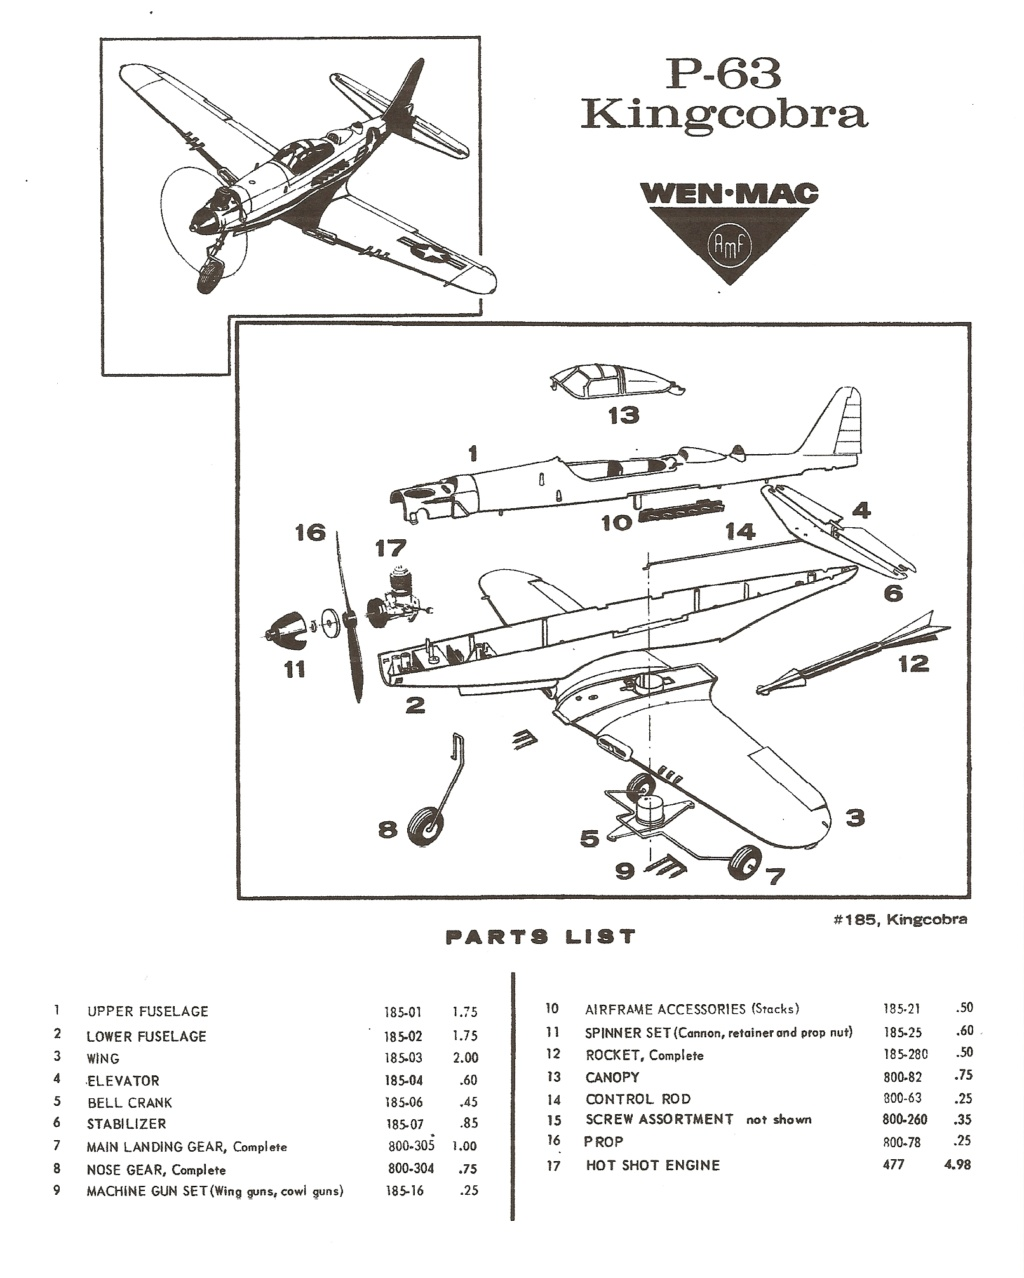 Wen Mac p39 canopy removal help P-63_p10